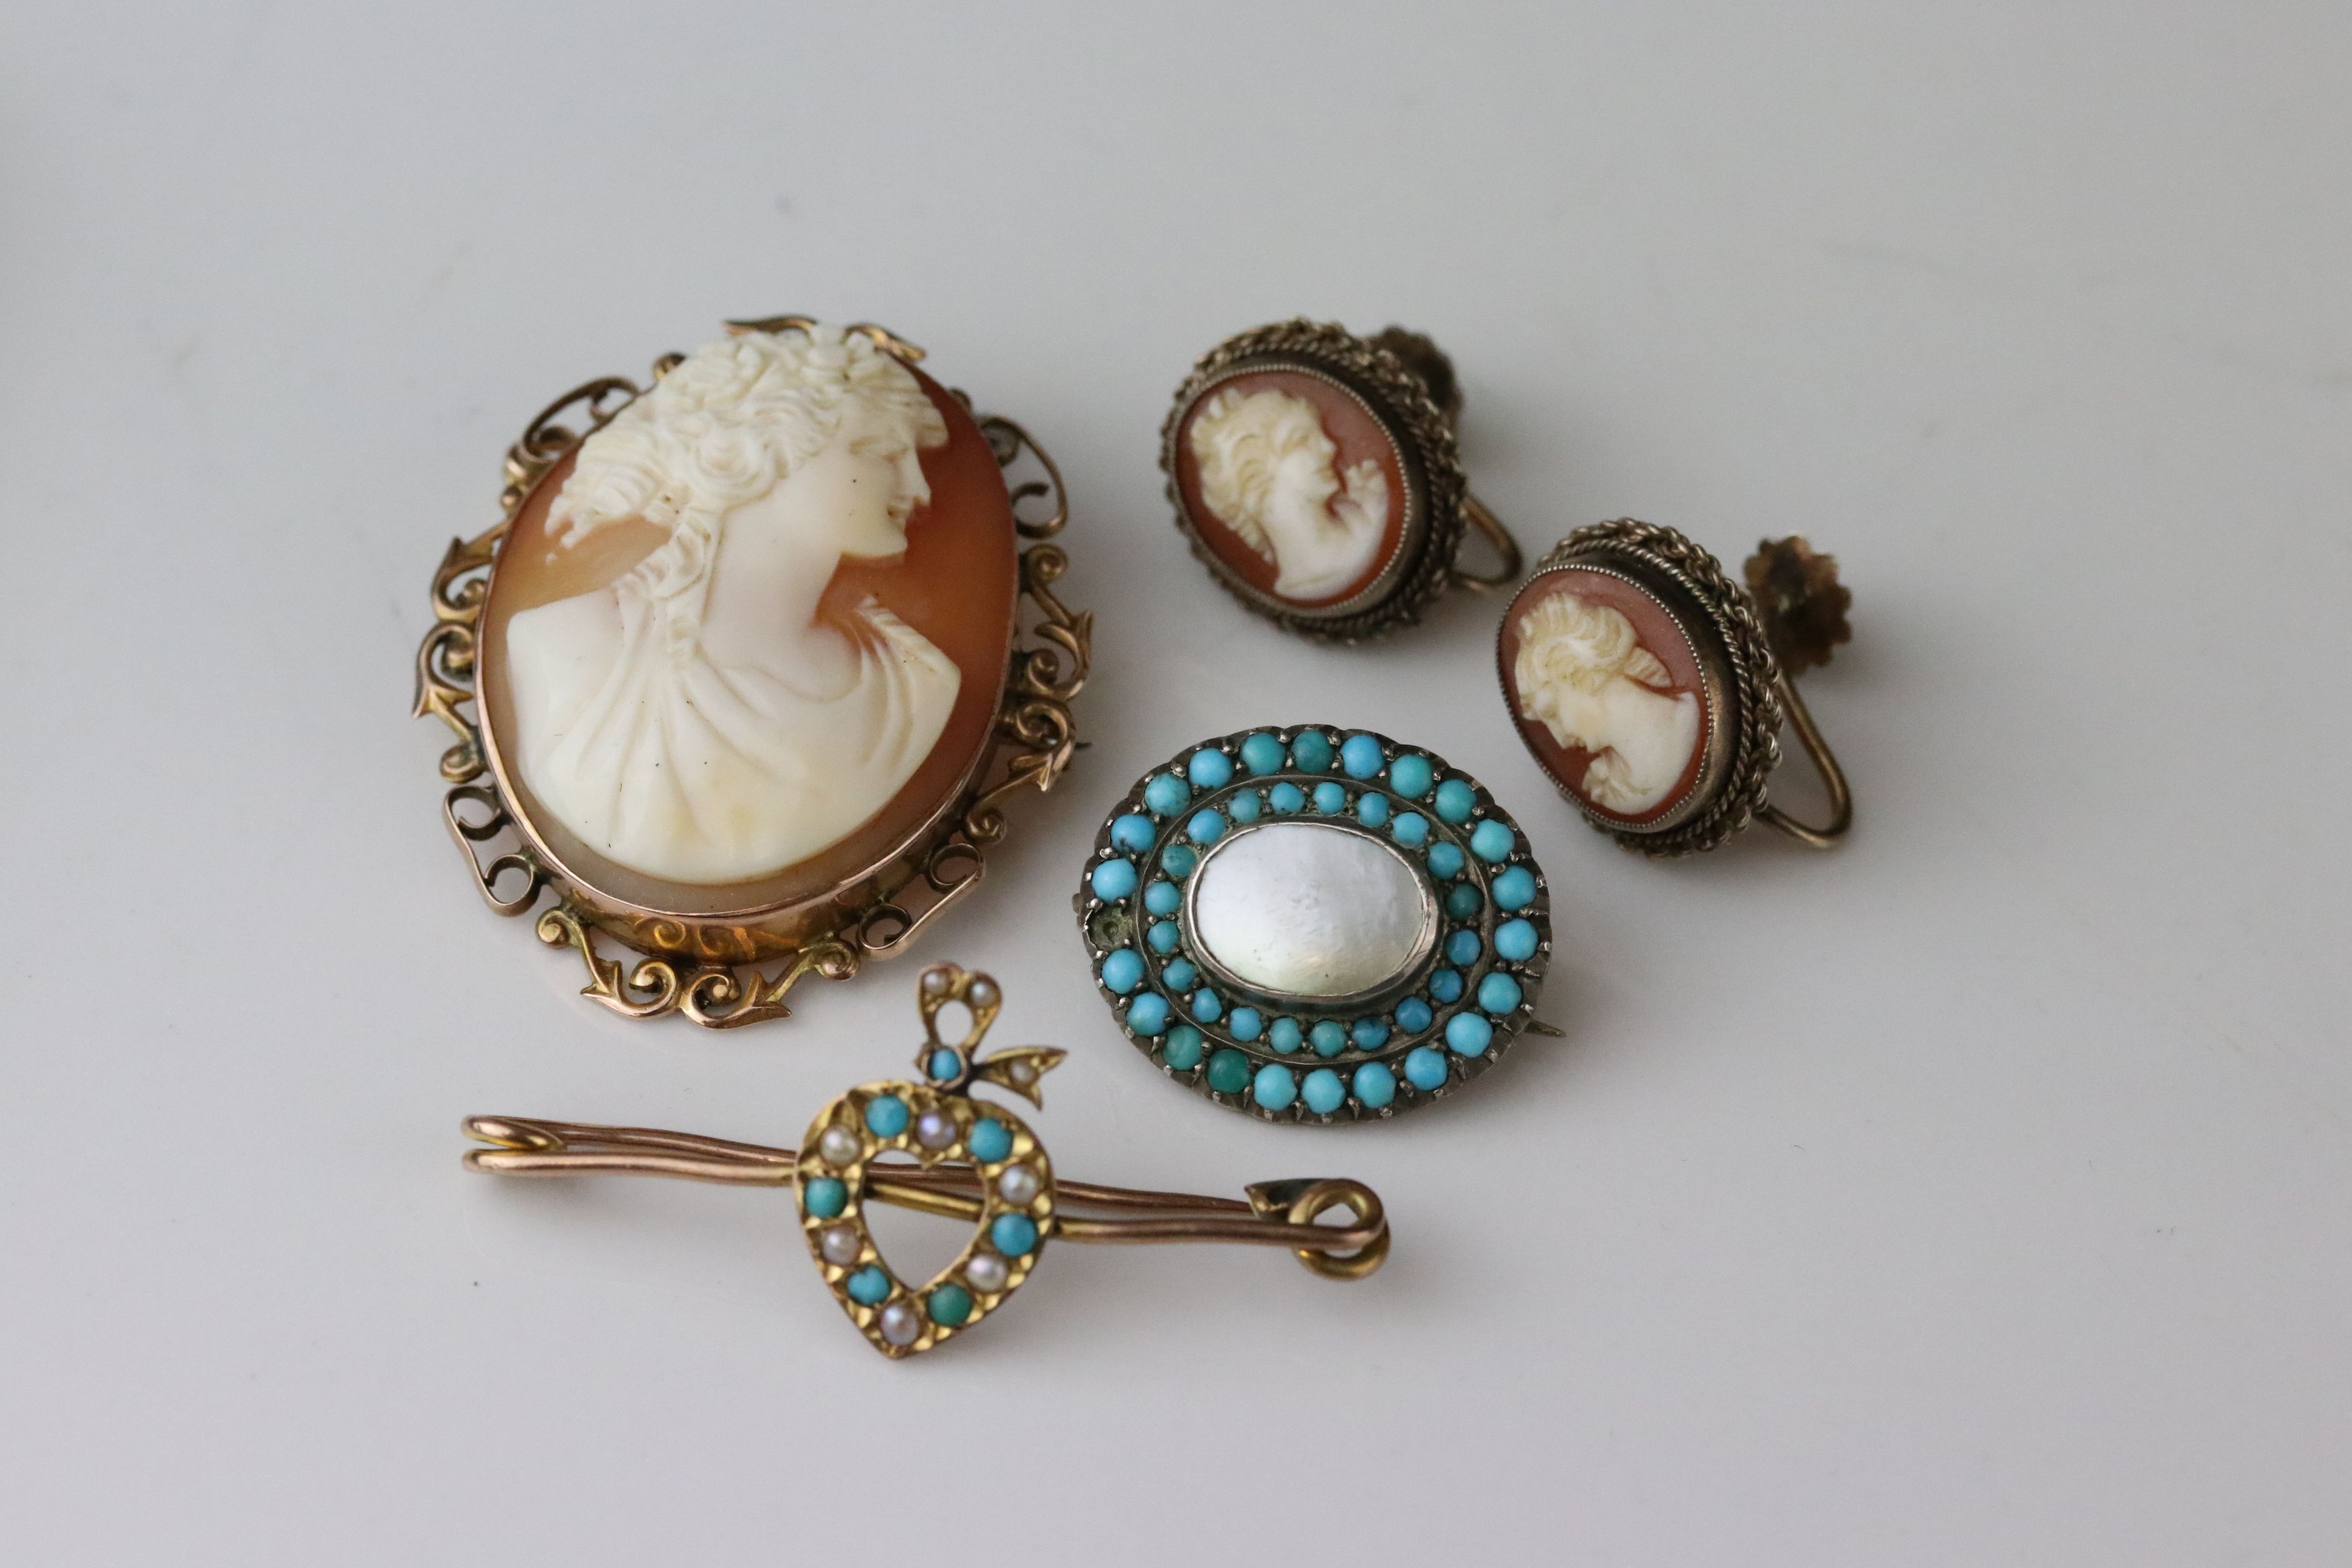 Late Victorian turquoise and seed pearl 9ct yellow gold sweetheart brooch, the central heart motif